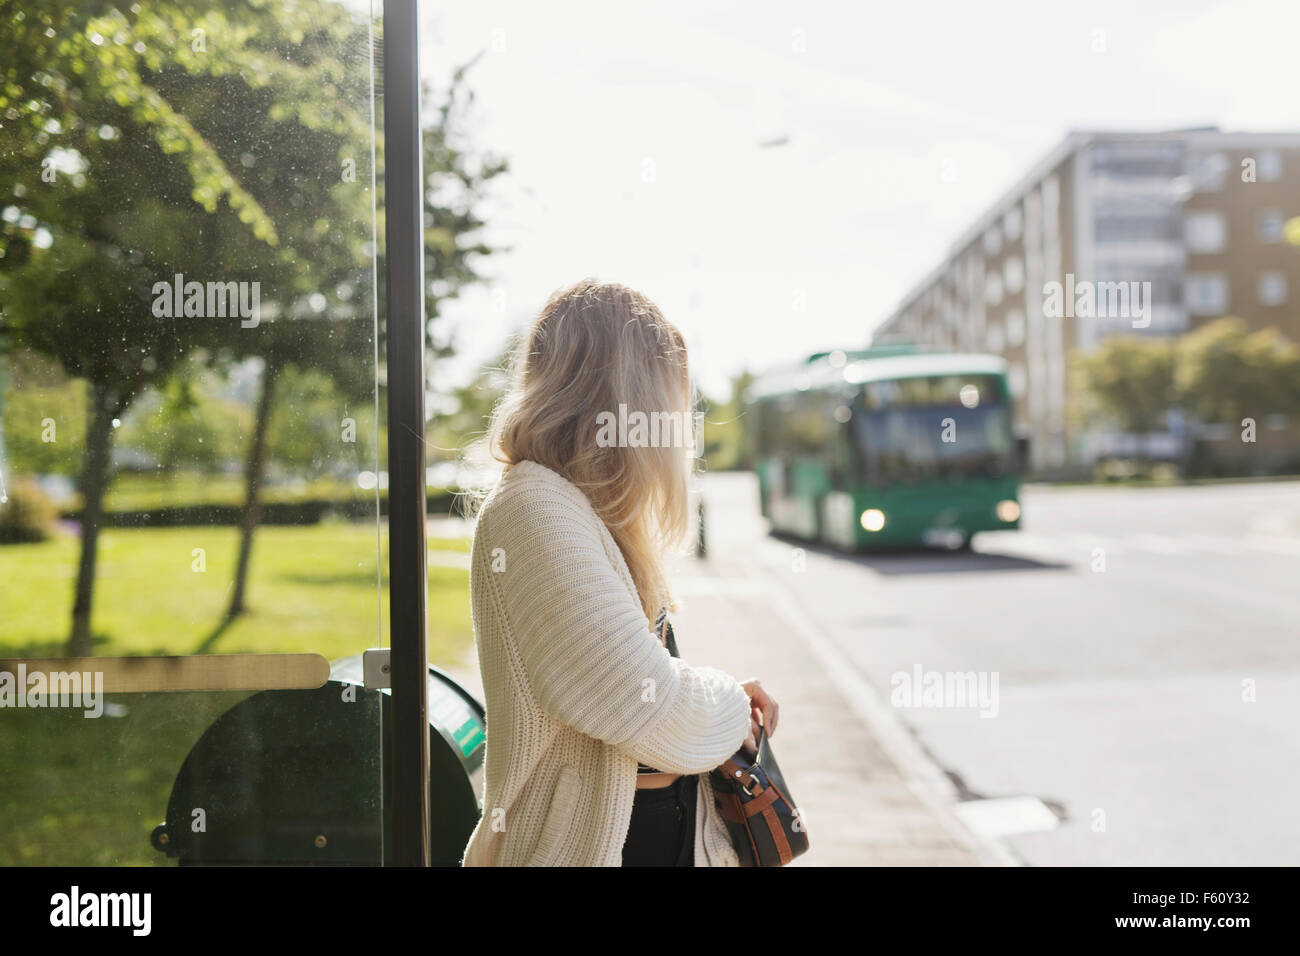 Young woman carrying shoulder bag standing near garbage bin looking at bus - Stock Image